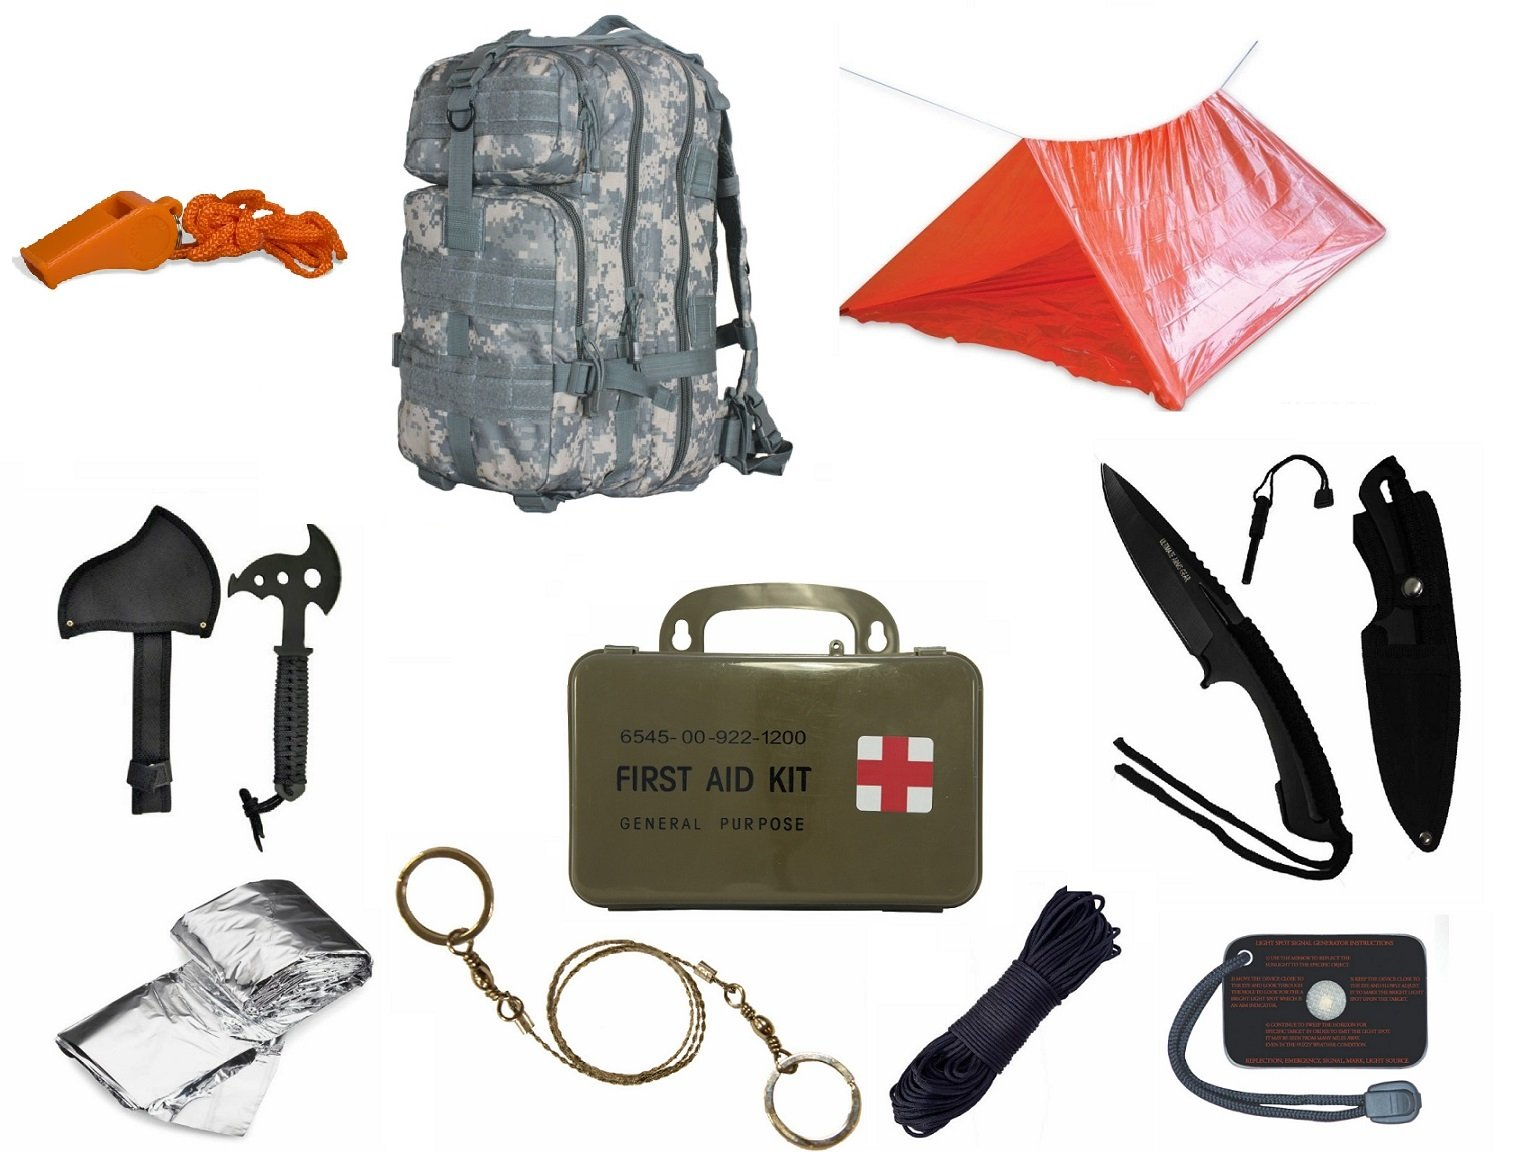 Ultimate Arms Gear Level 3 Assault MOLLE ACU Digital Backpack Kit; Signal Mirror, Polarshield Blanket, Knife Fire Starter, Wire Saw, Axe, 50' Foot Paracord, Camping Tube Tent, Whistle & First Aid Kit